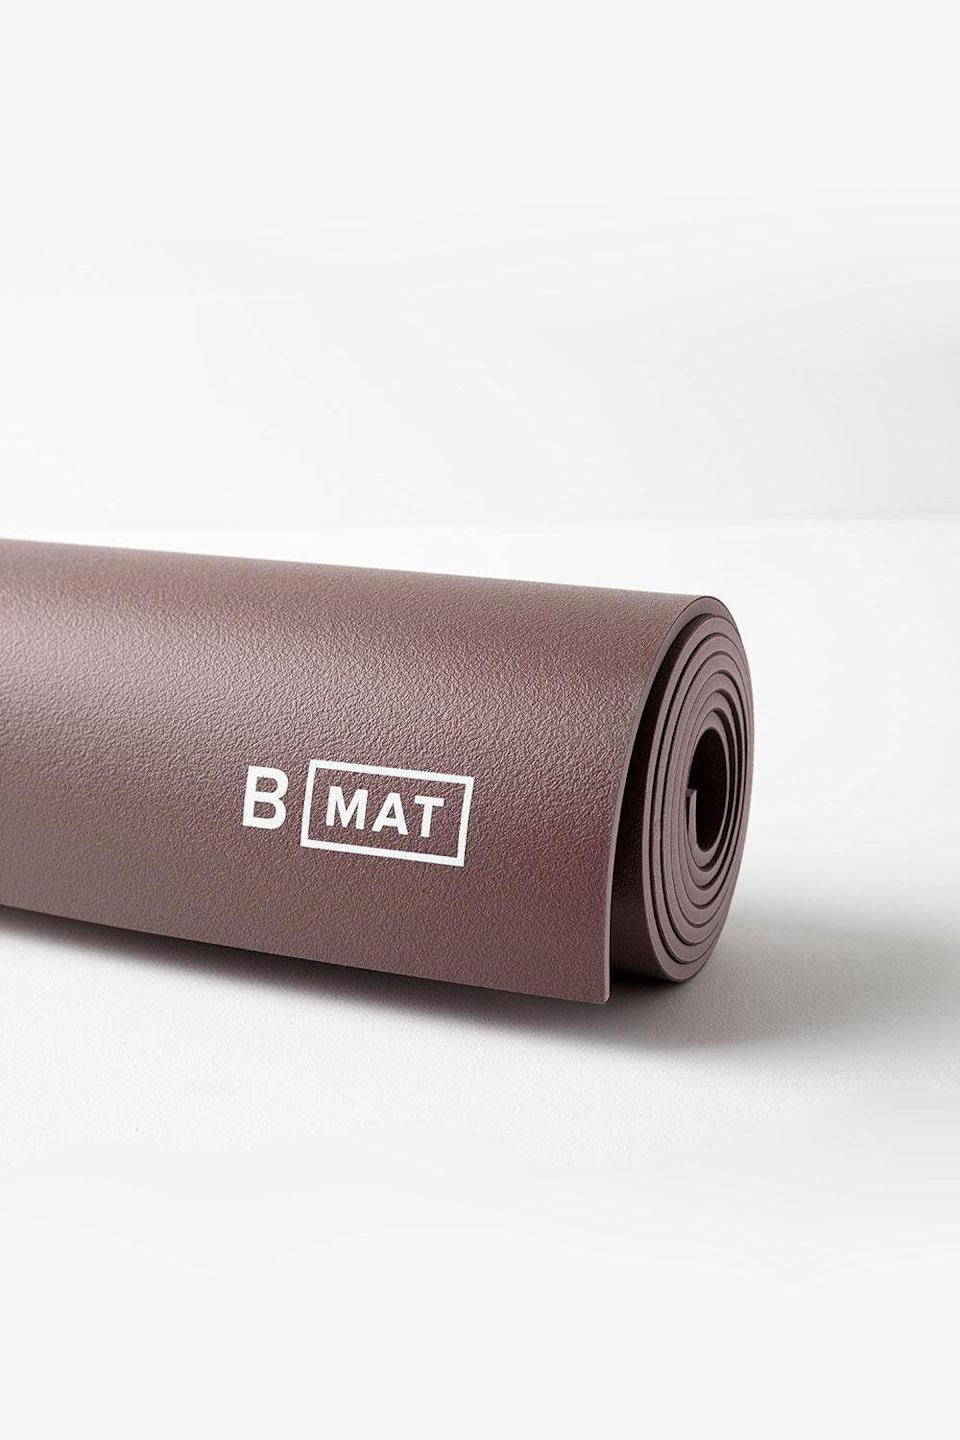 "<p><strong>B Yoga</strong></p><p><strong>$96.00</strong></p><p><a href=""https://us.byoganow.com/collections/b-mat-strong/products/the-b-mat-strong-6mm-cacao"" rel=""nofollow noopener"" target=""_blank"" data-ylk=""slk:SHOP IT"" class=""link rapid-noclick-resp"">SHOP IT</a></p><p>""My current go-to yoga mat is the <a href=""https://us.byoganow.com/collections/b-mat-strong/products/the-b-mat-strong-6mm-cacao"" rel=""nofollow noopener"" target=""_blank"" data-ylk=""slk:B MAT Strong in Cacao"" class=""link rapid-noclick-resp"">B MAT Strong in Cacao</a>. This thicker mat (6mm) is perfect for my at-home practice, offering loads of cushioning and support with the same renowned B MAT grip. I also love this color; it's so grounding and soothing, which is important these days. And, of course, all B MATs are eco-friendly based on their production process and composition.""</p><p><em>—Andrea Morris, <em><a href=""https://us.byoganow.com/"" rel=""nofollow noopener"" target=""_blank"" data-ylk=""slk:B Yoga"" class=""link rapid-noclick-resp"">B Yoga</a></em> Founder & CEO</em></p>"